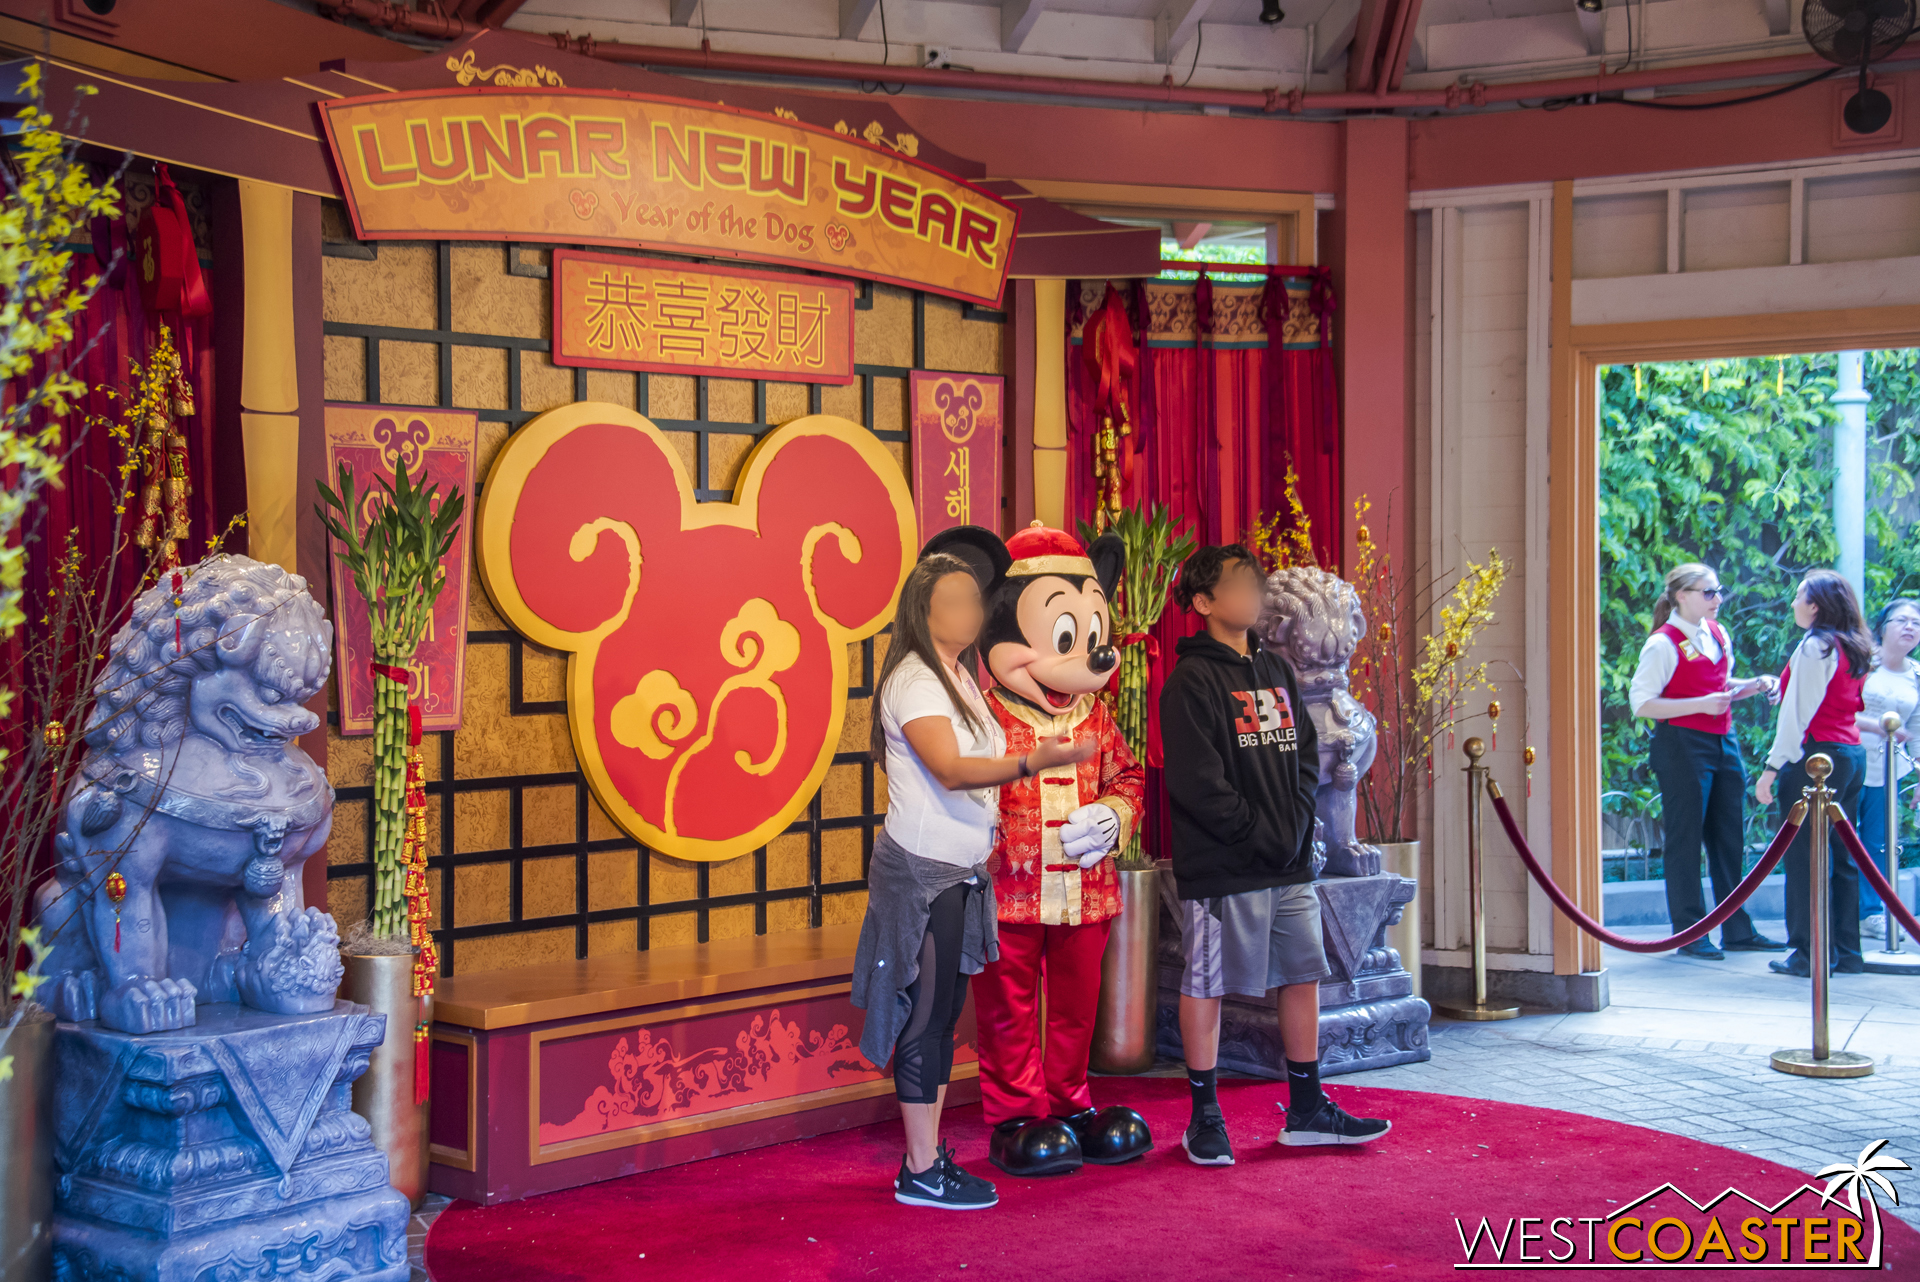 He's one of several characters guests can meet.